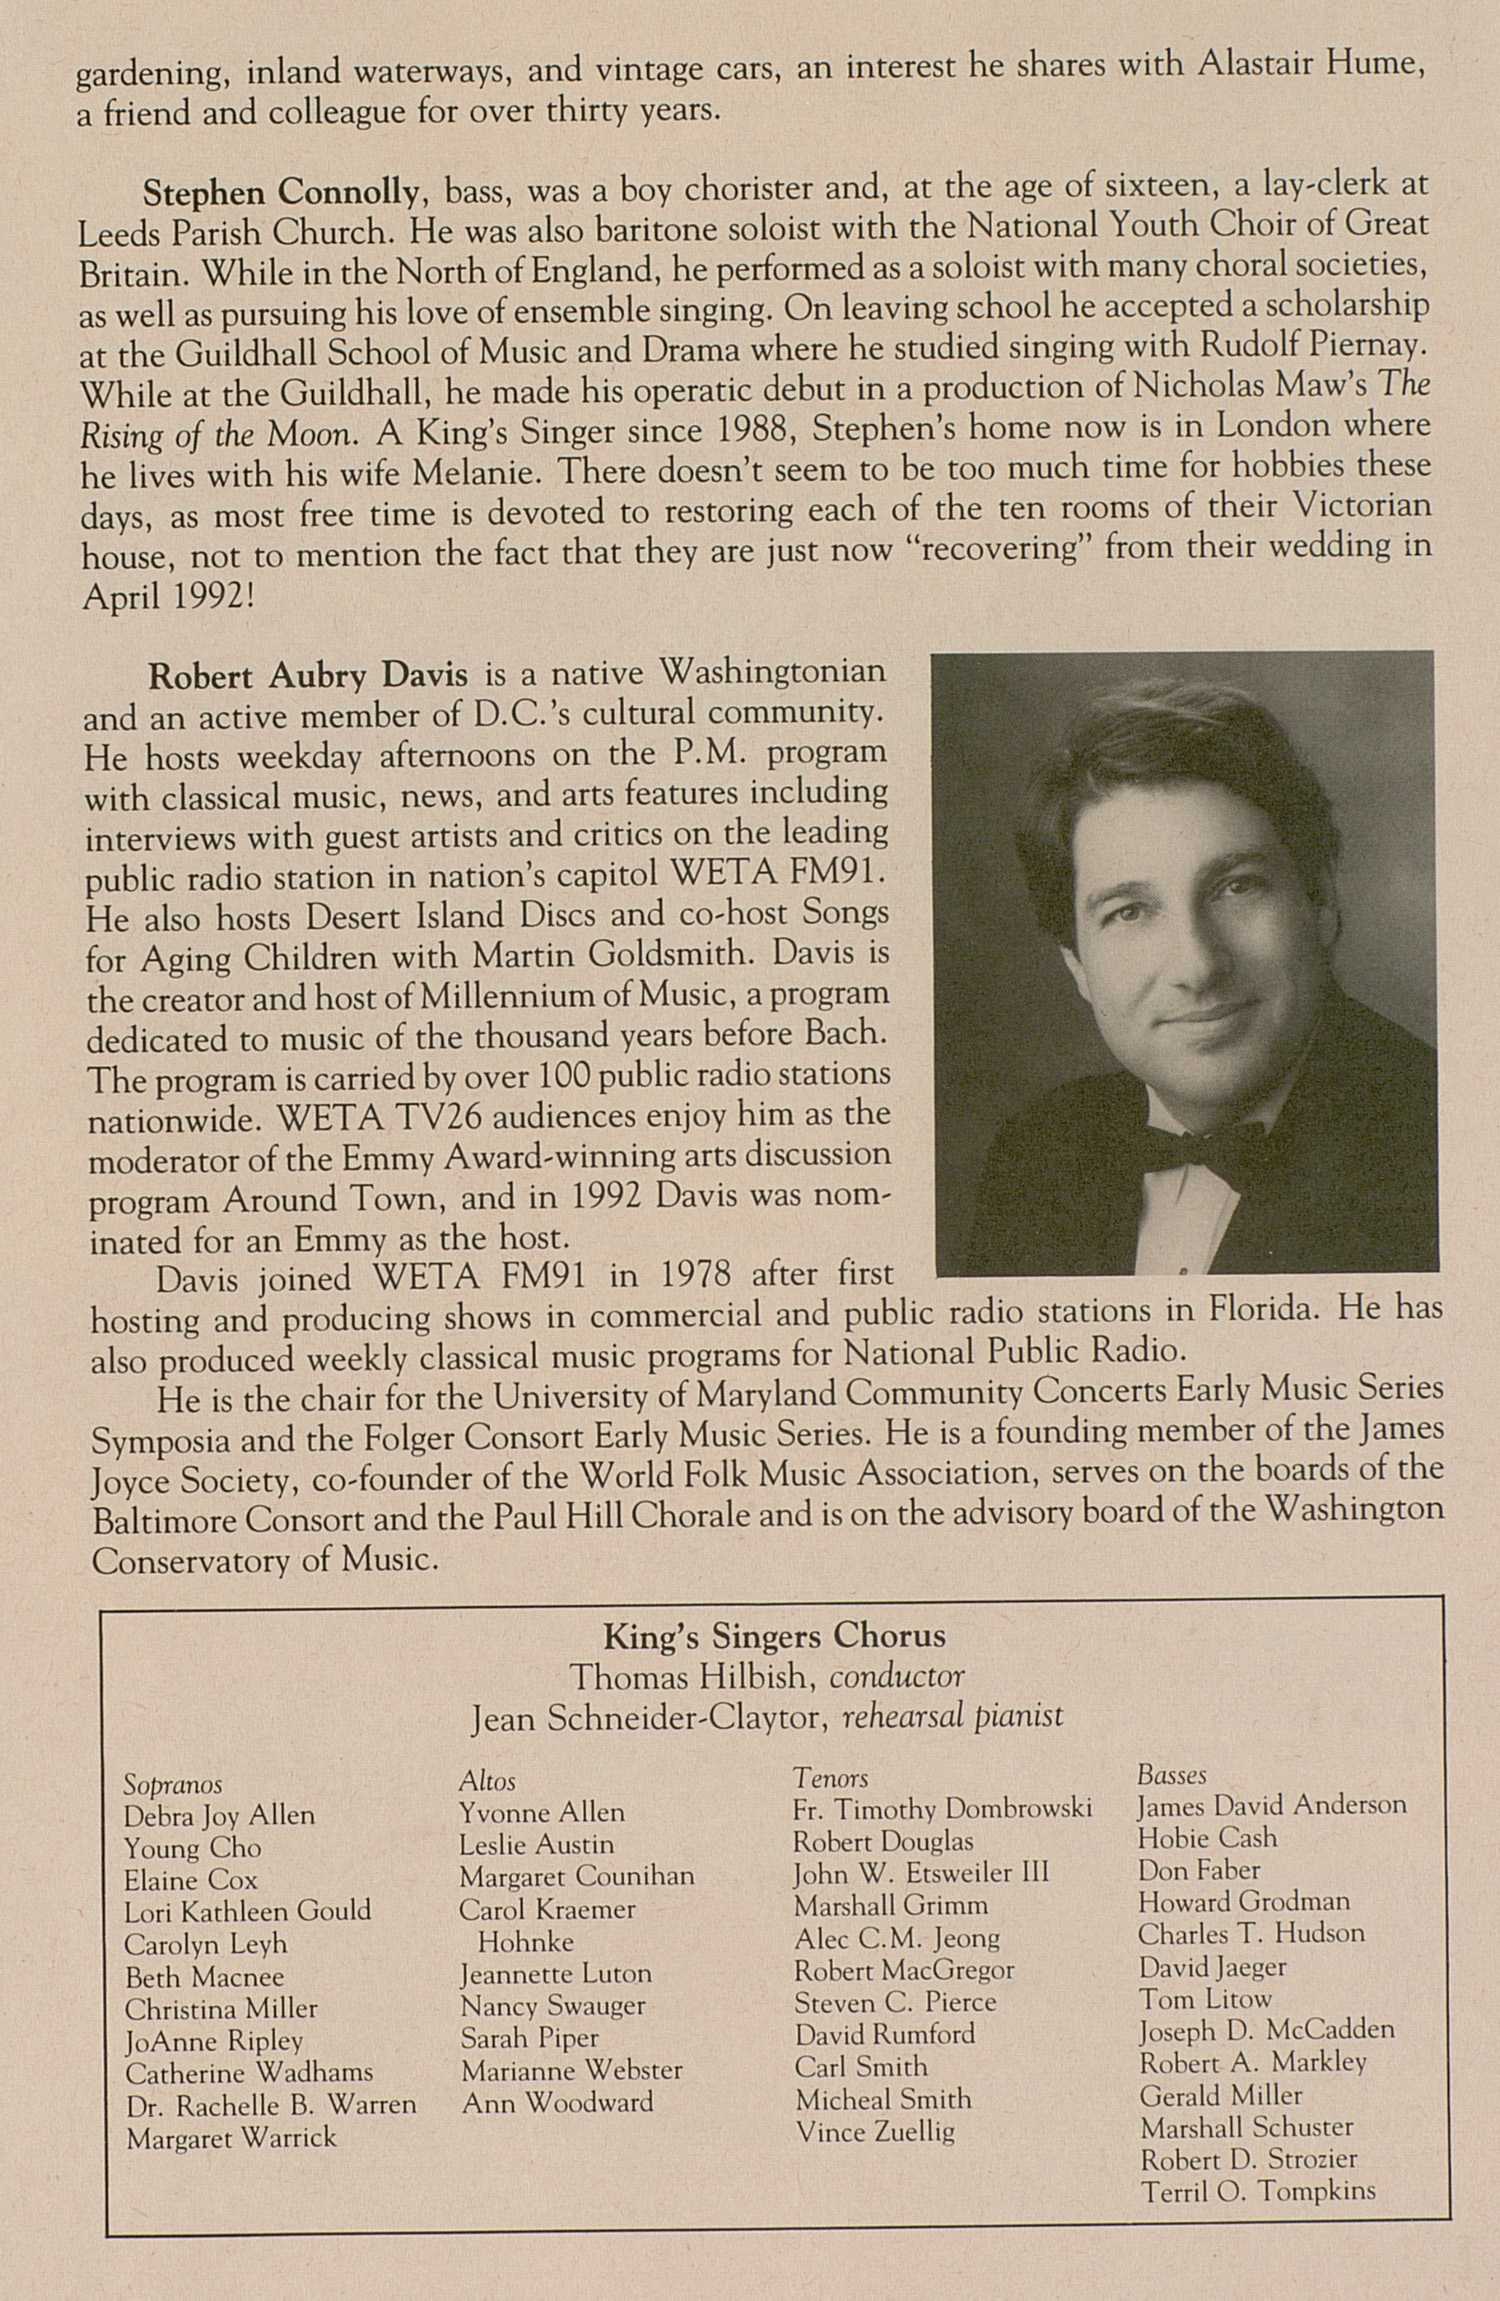 UMS Concert Program, May 2, 1993: The King's Singers --  image